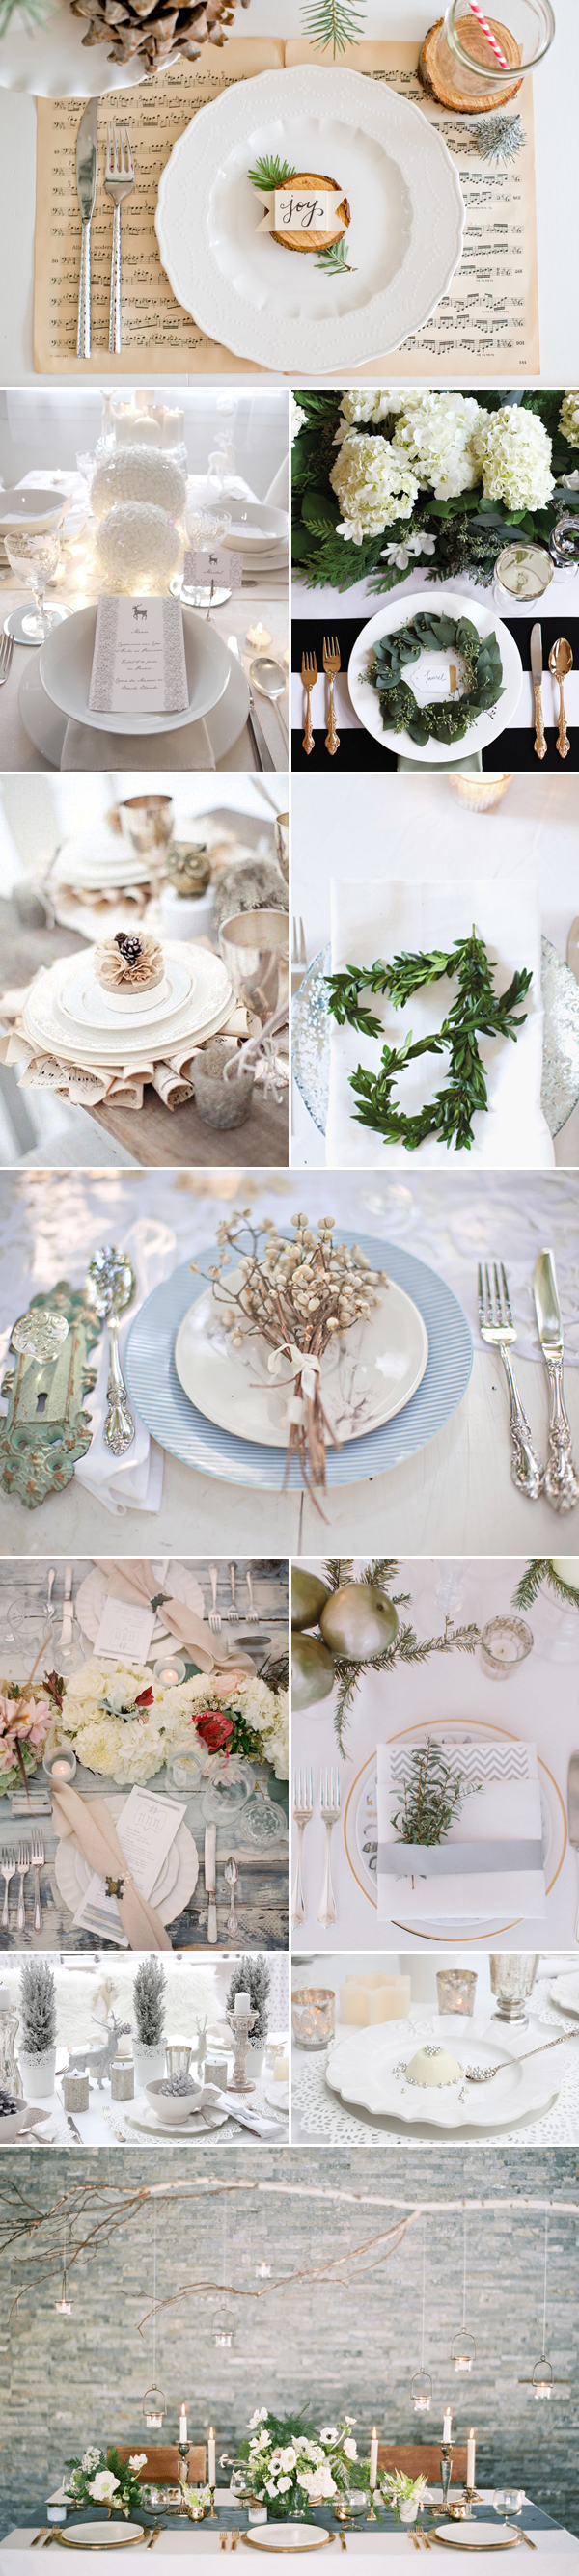 winter-placesetting02-pure